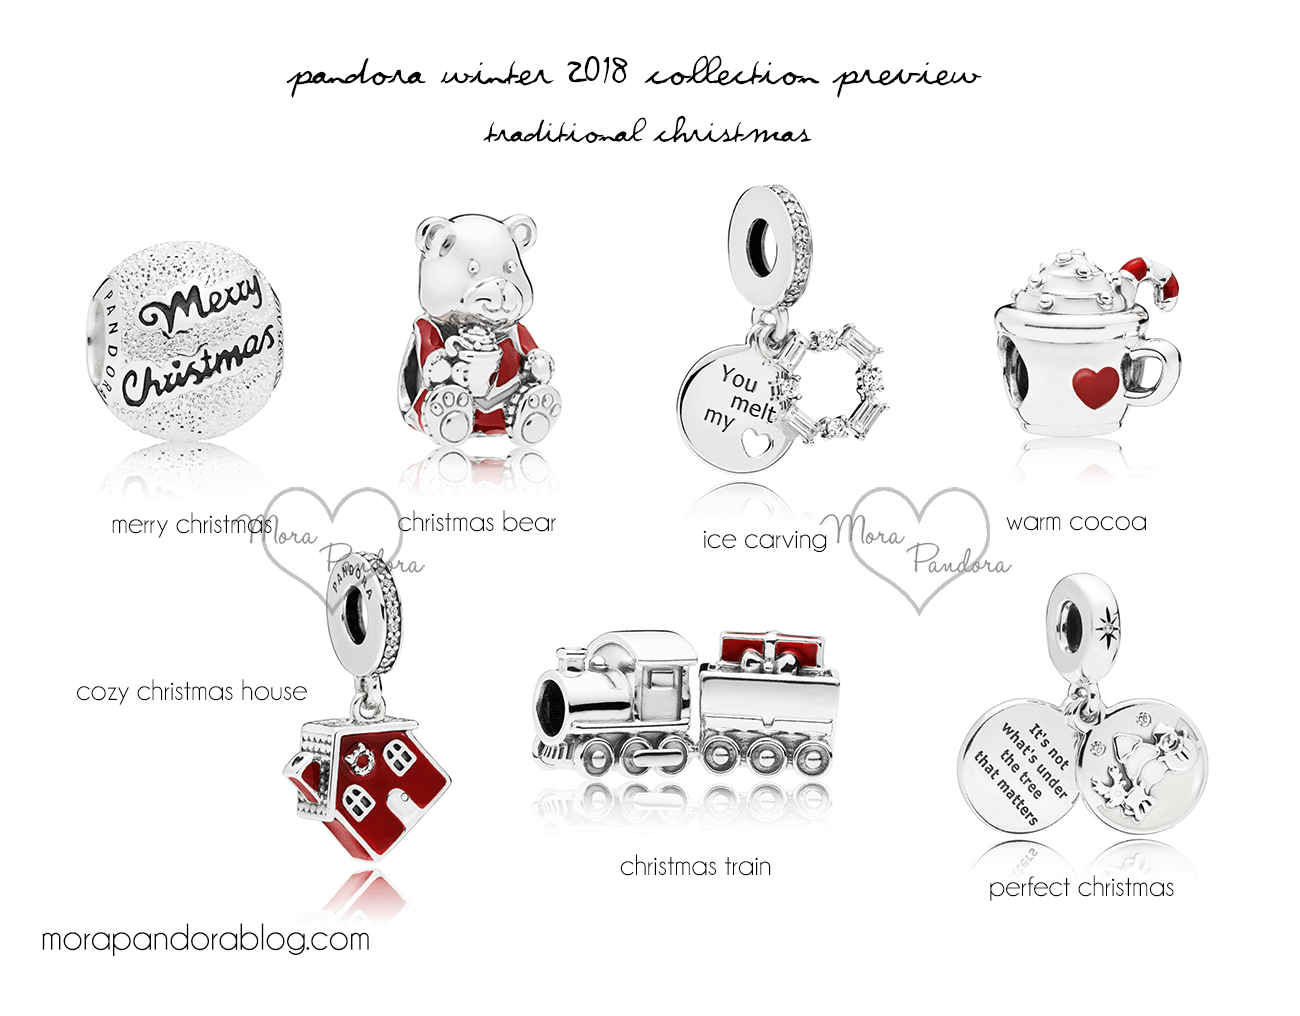 34c1c655e Pandora Winter Collection- November 1, 2018 - Warm Cocoa €39, Cozy Christmas  House, Christmas Train €69